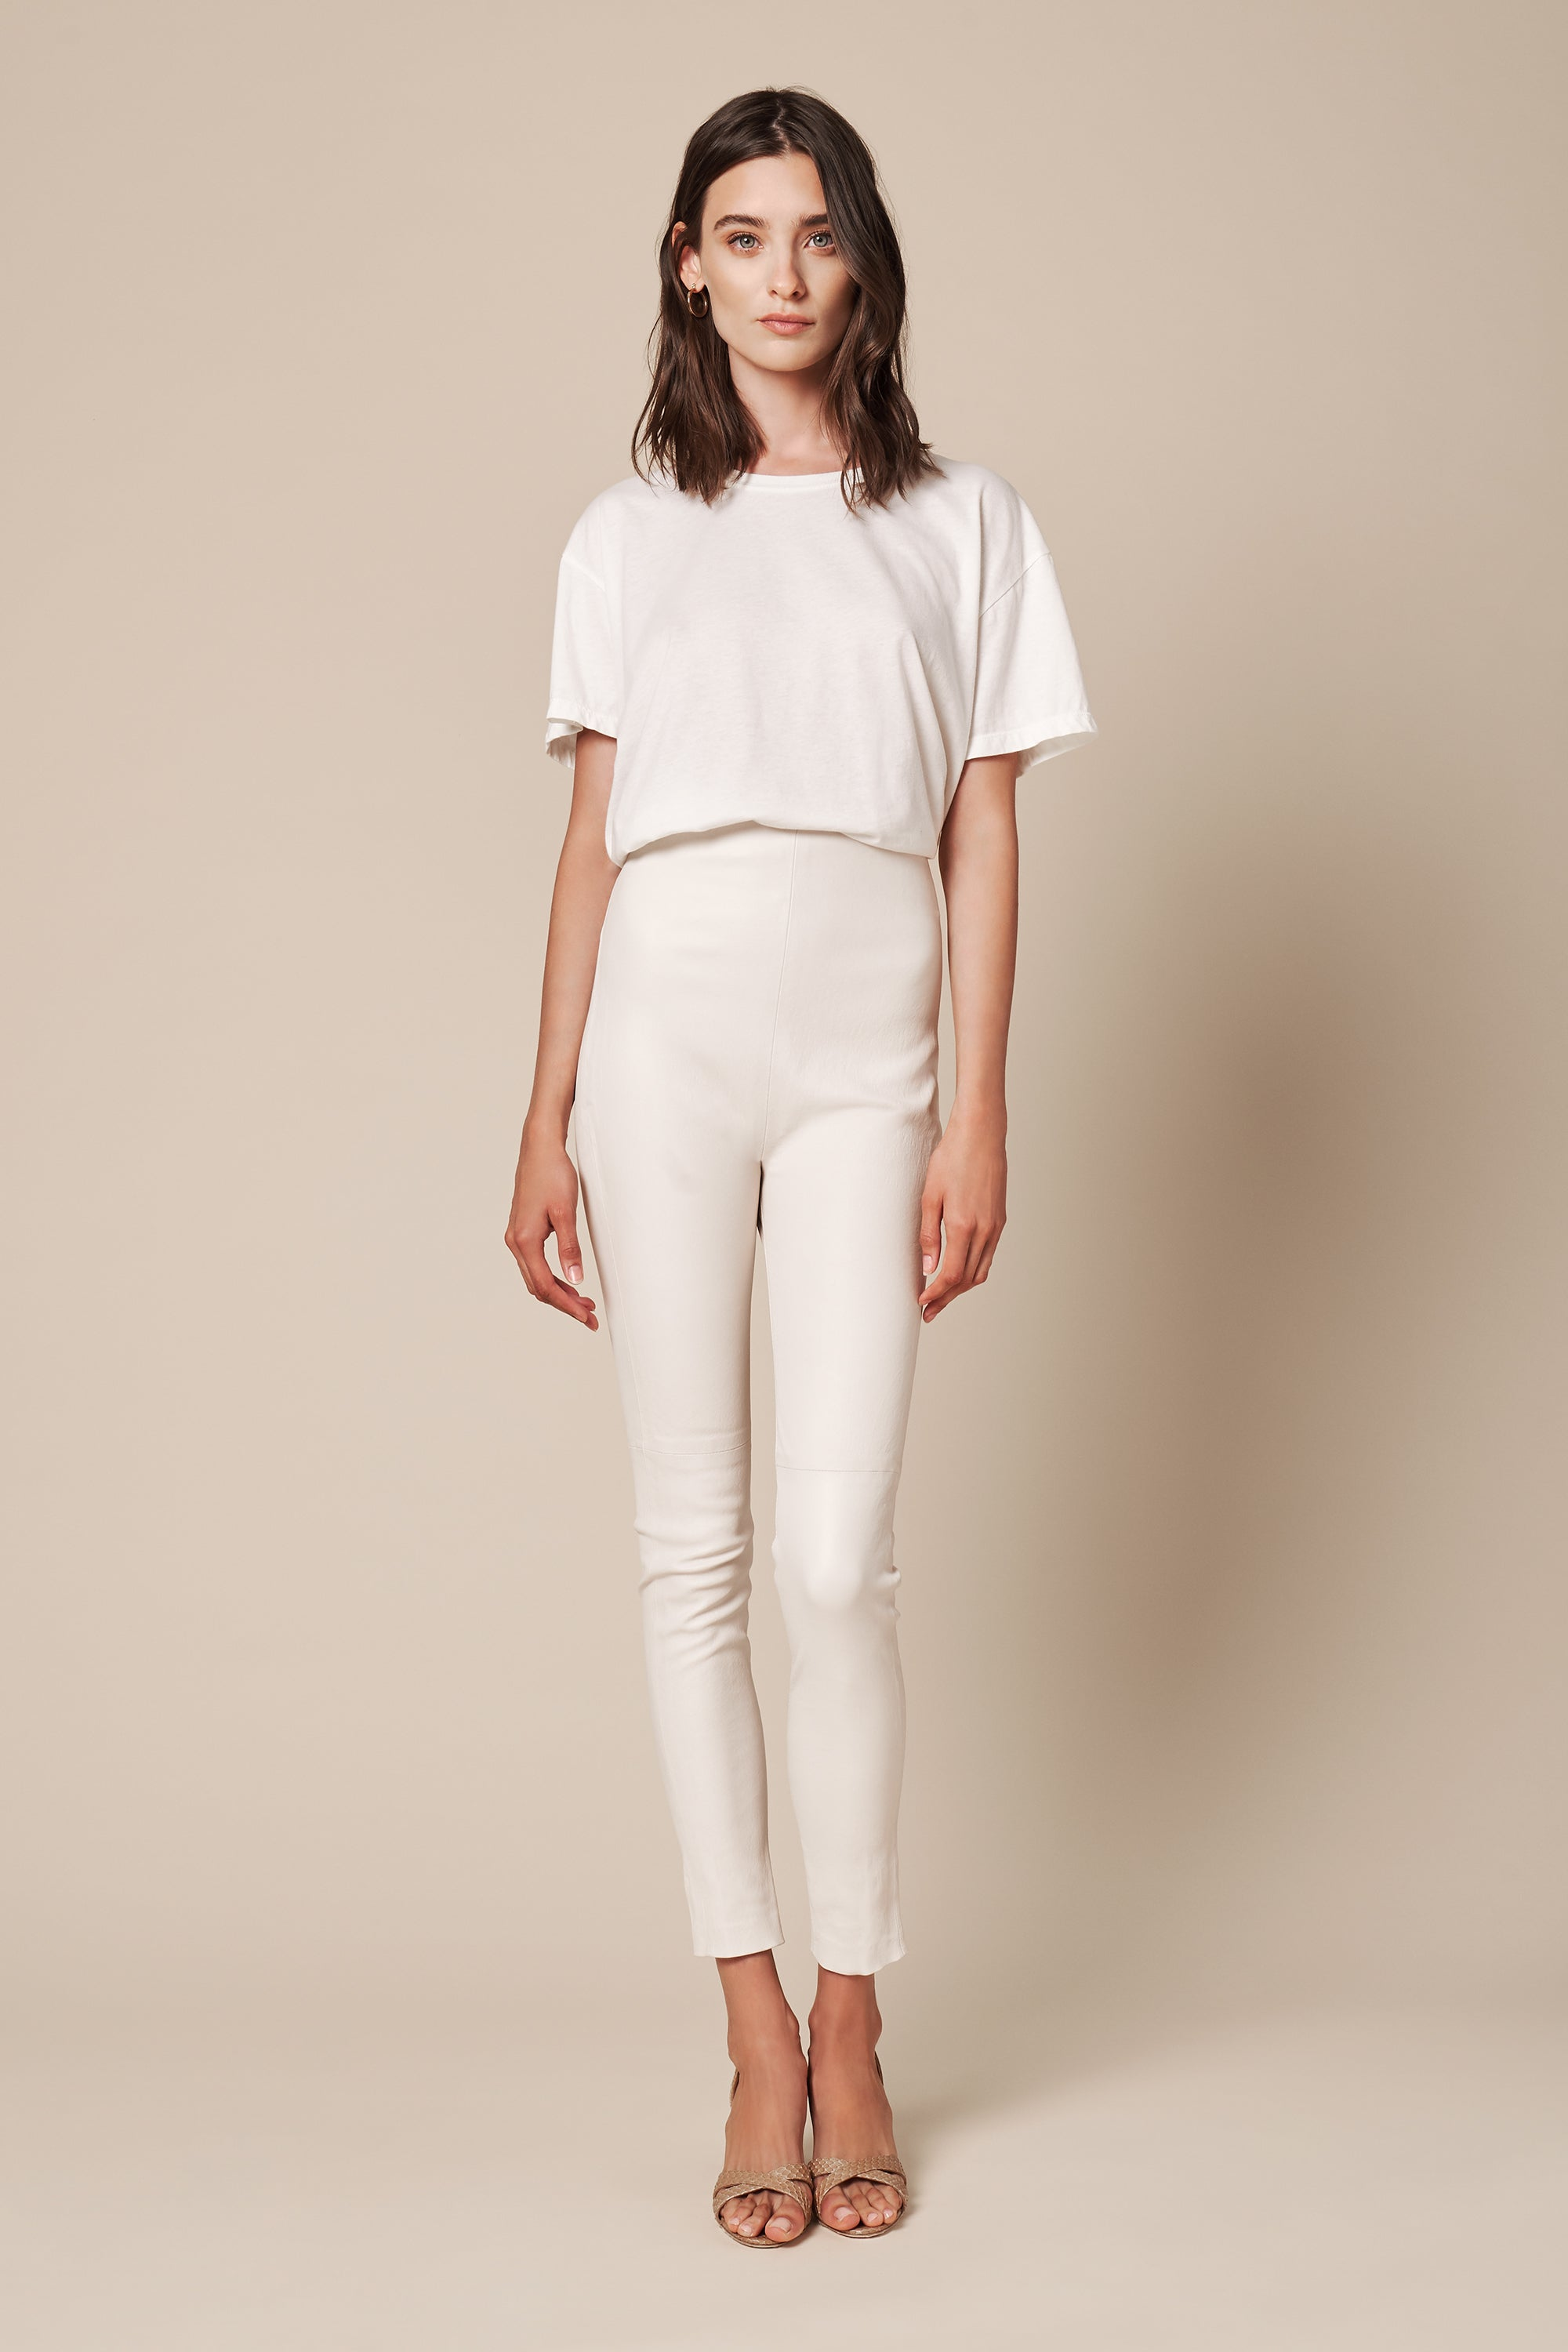 JESSICA LEATHER PANT | POWDER